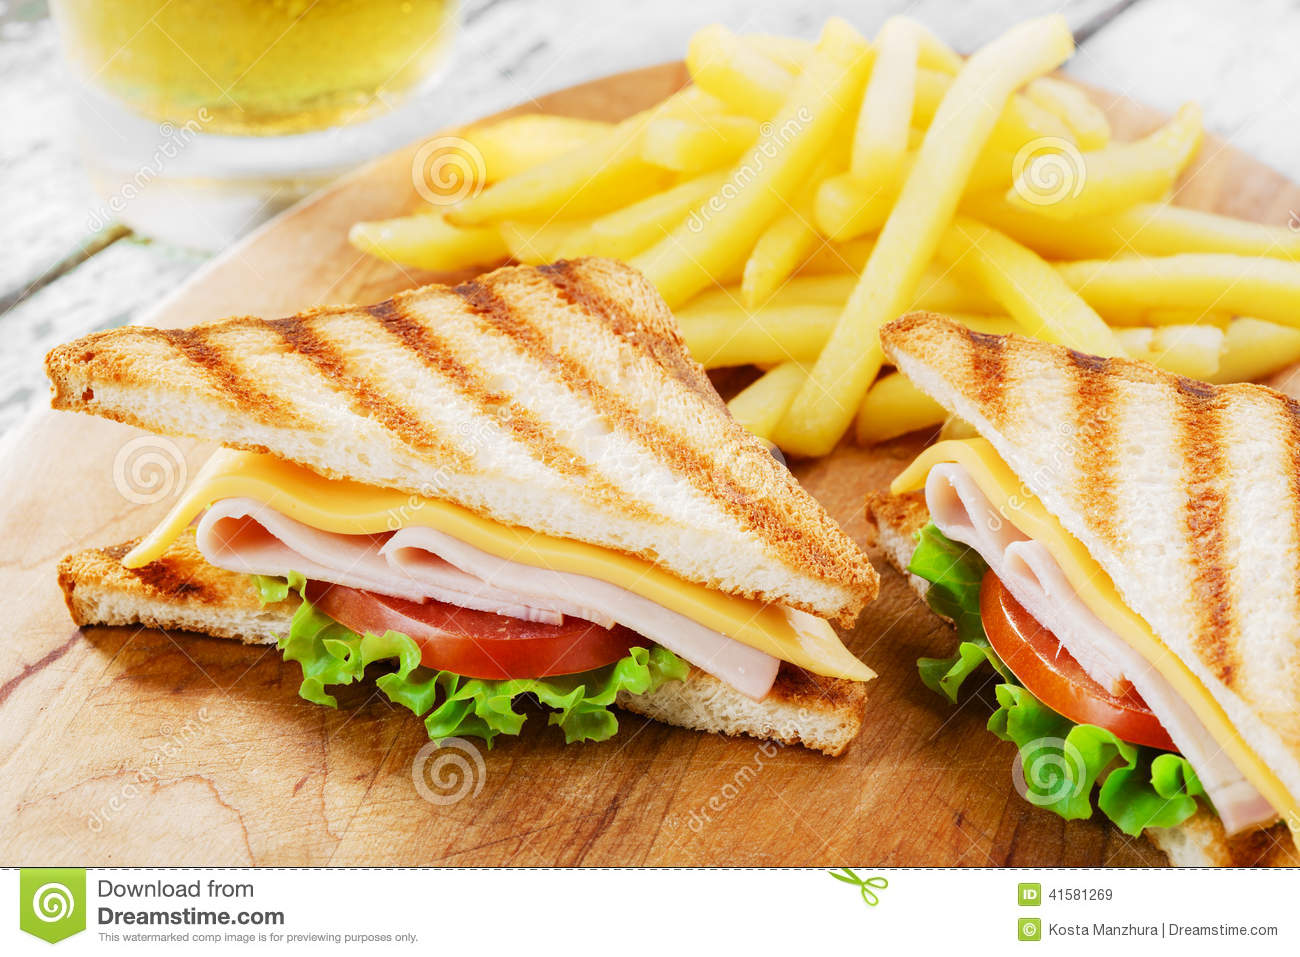 More similar stock images of ` Grilled sandwich with ham cheese `